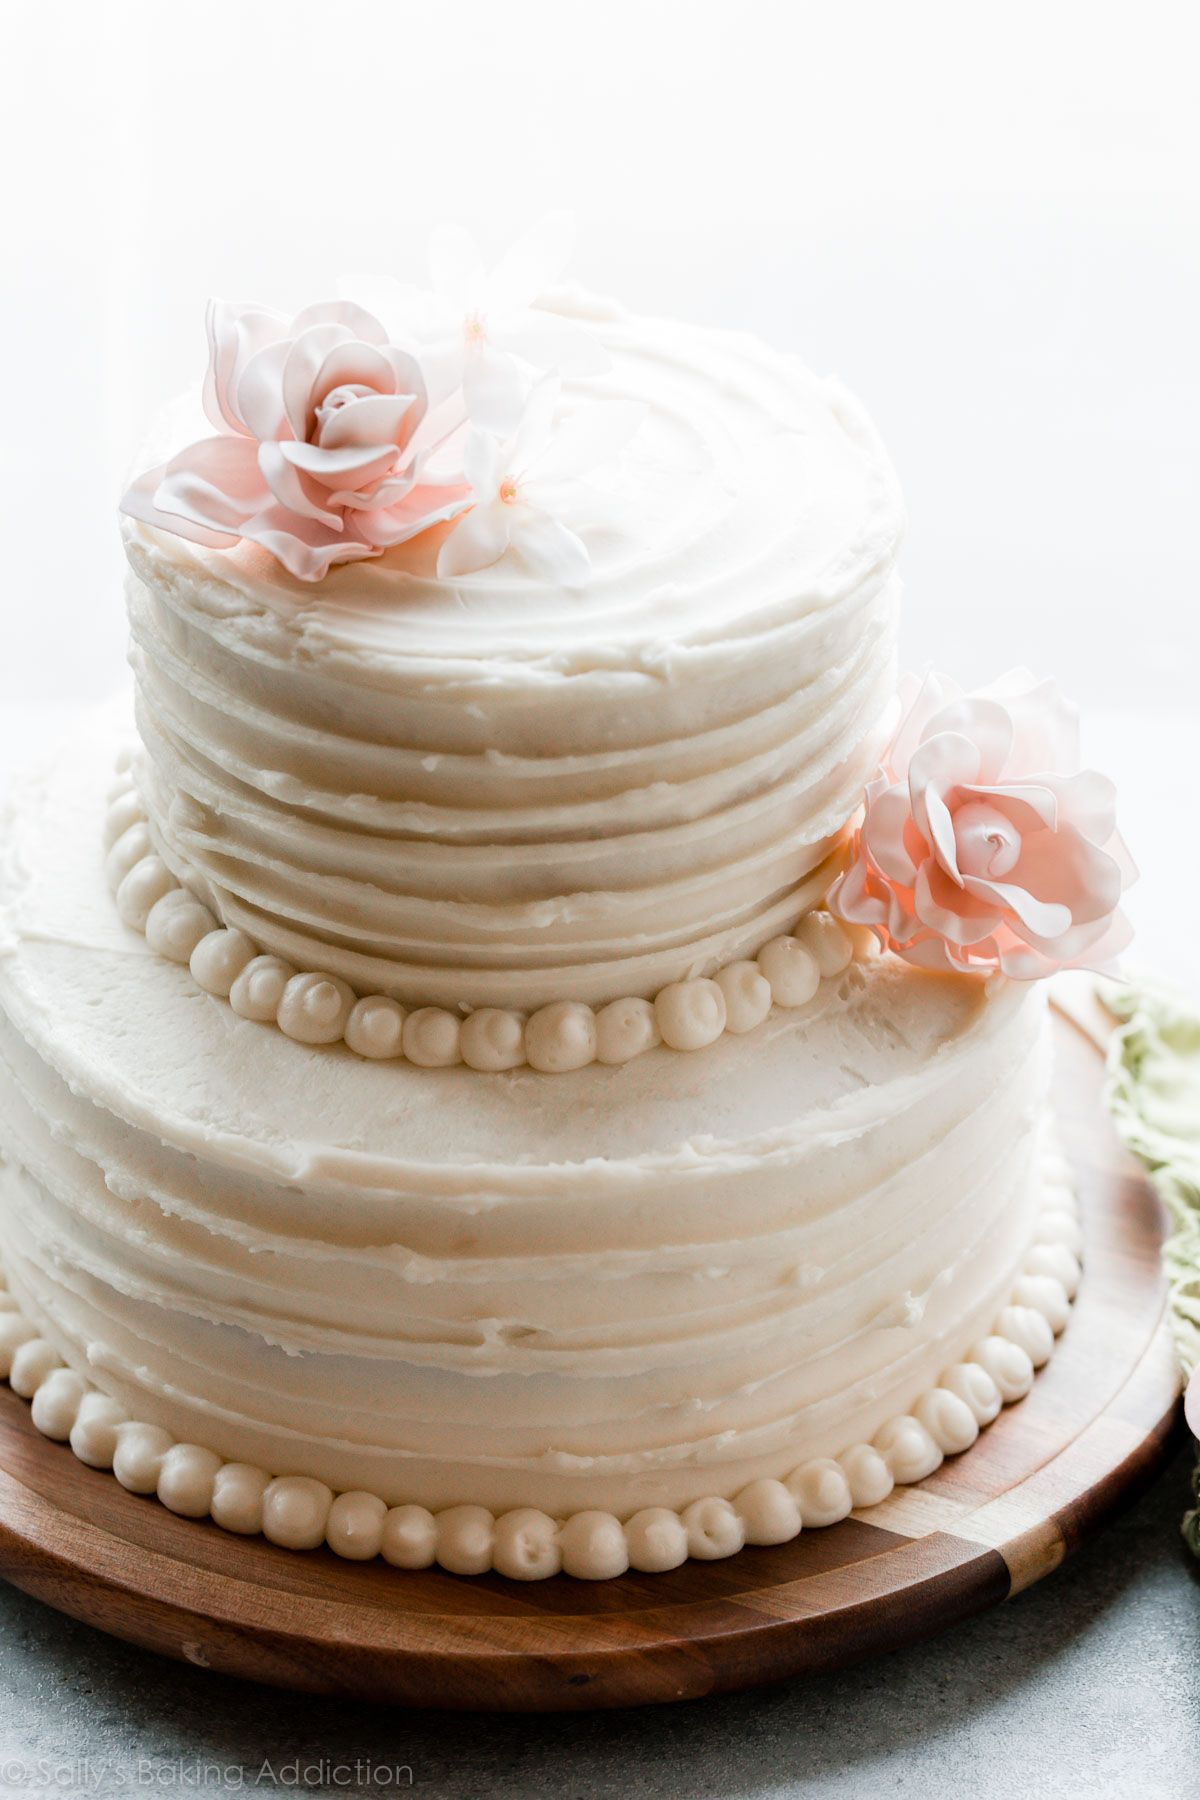 How To Make A Homemade Diy 2 Tier Wedding Cake With Full Recipe